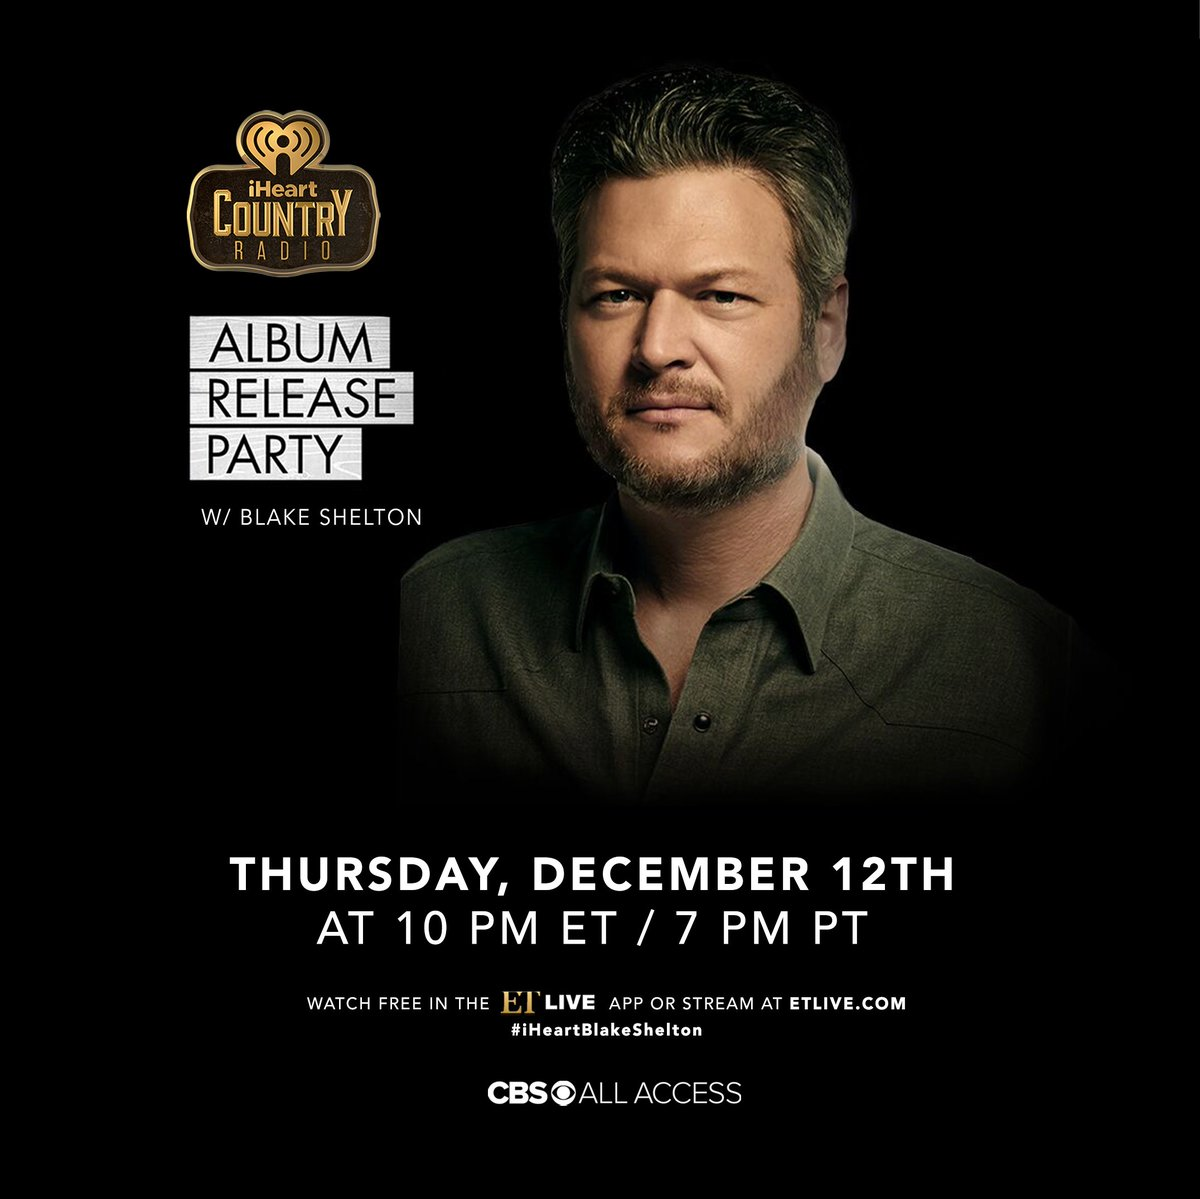 Y'all wanna throw it down on a THURSDAY night? Got 200 tickets to my album release party on 12/12. First come, first serve tickets! Get em now!  https://www.eventbrite.com/e/blake-shelton-iheartcountry-album-release-party-tickets-85504597553…